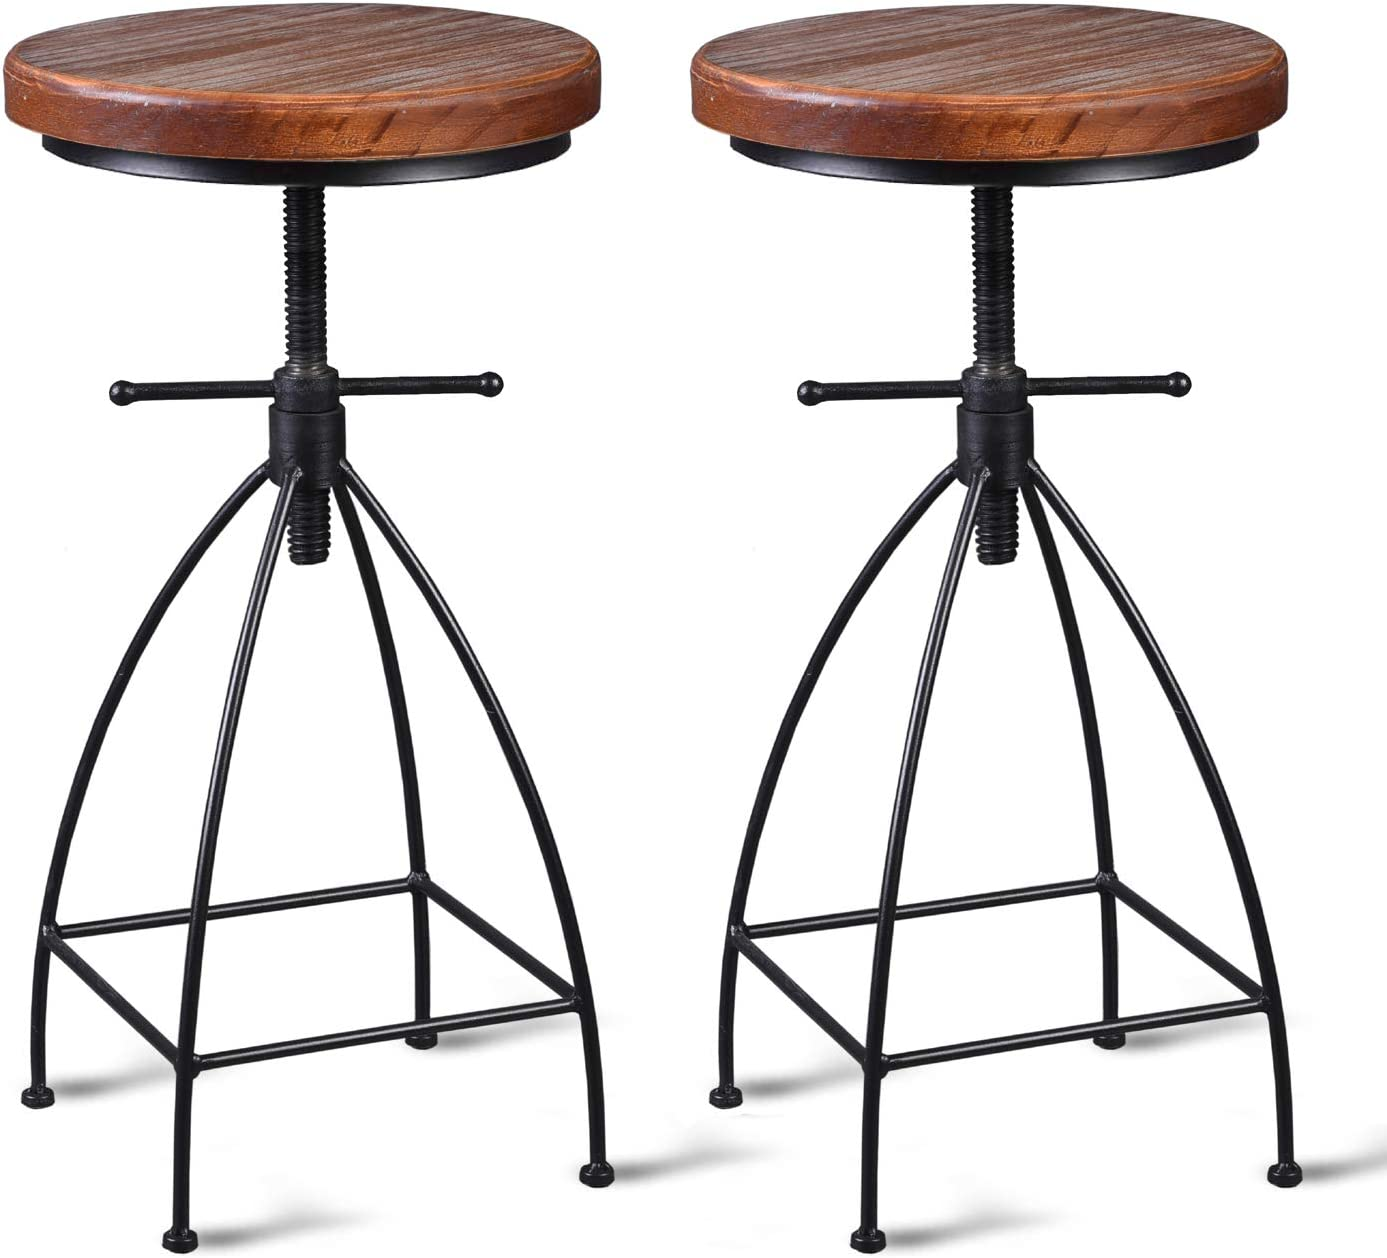 Buy Diwhy Industrial Vintage Rustic Bar Stool, Kitchen Counter ...